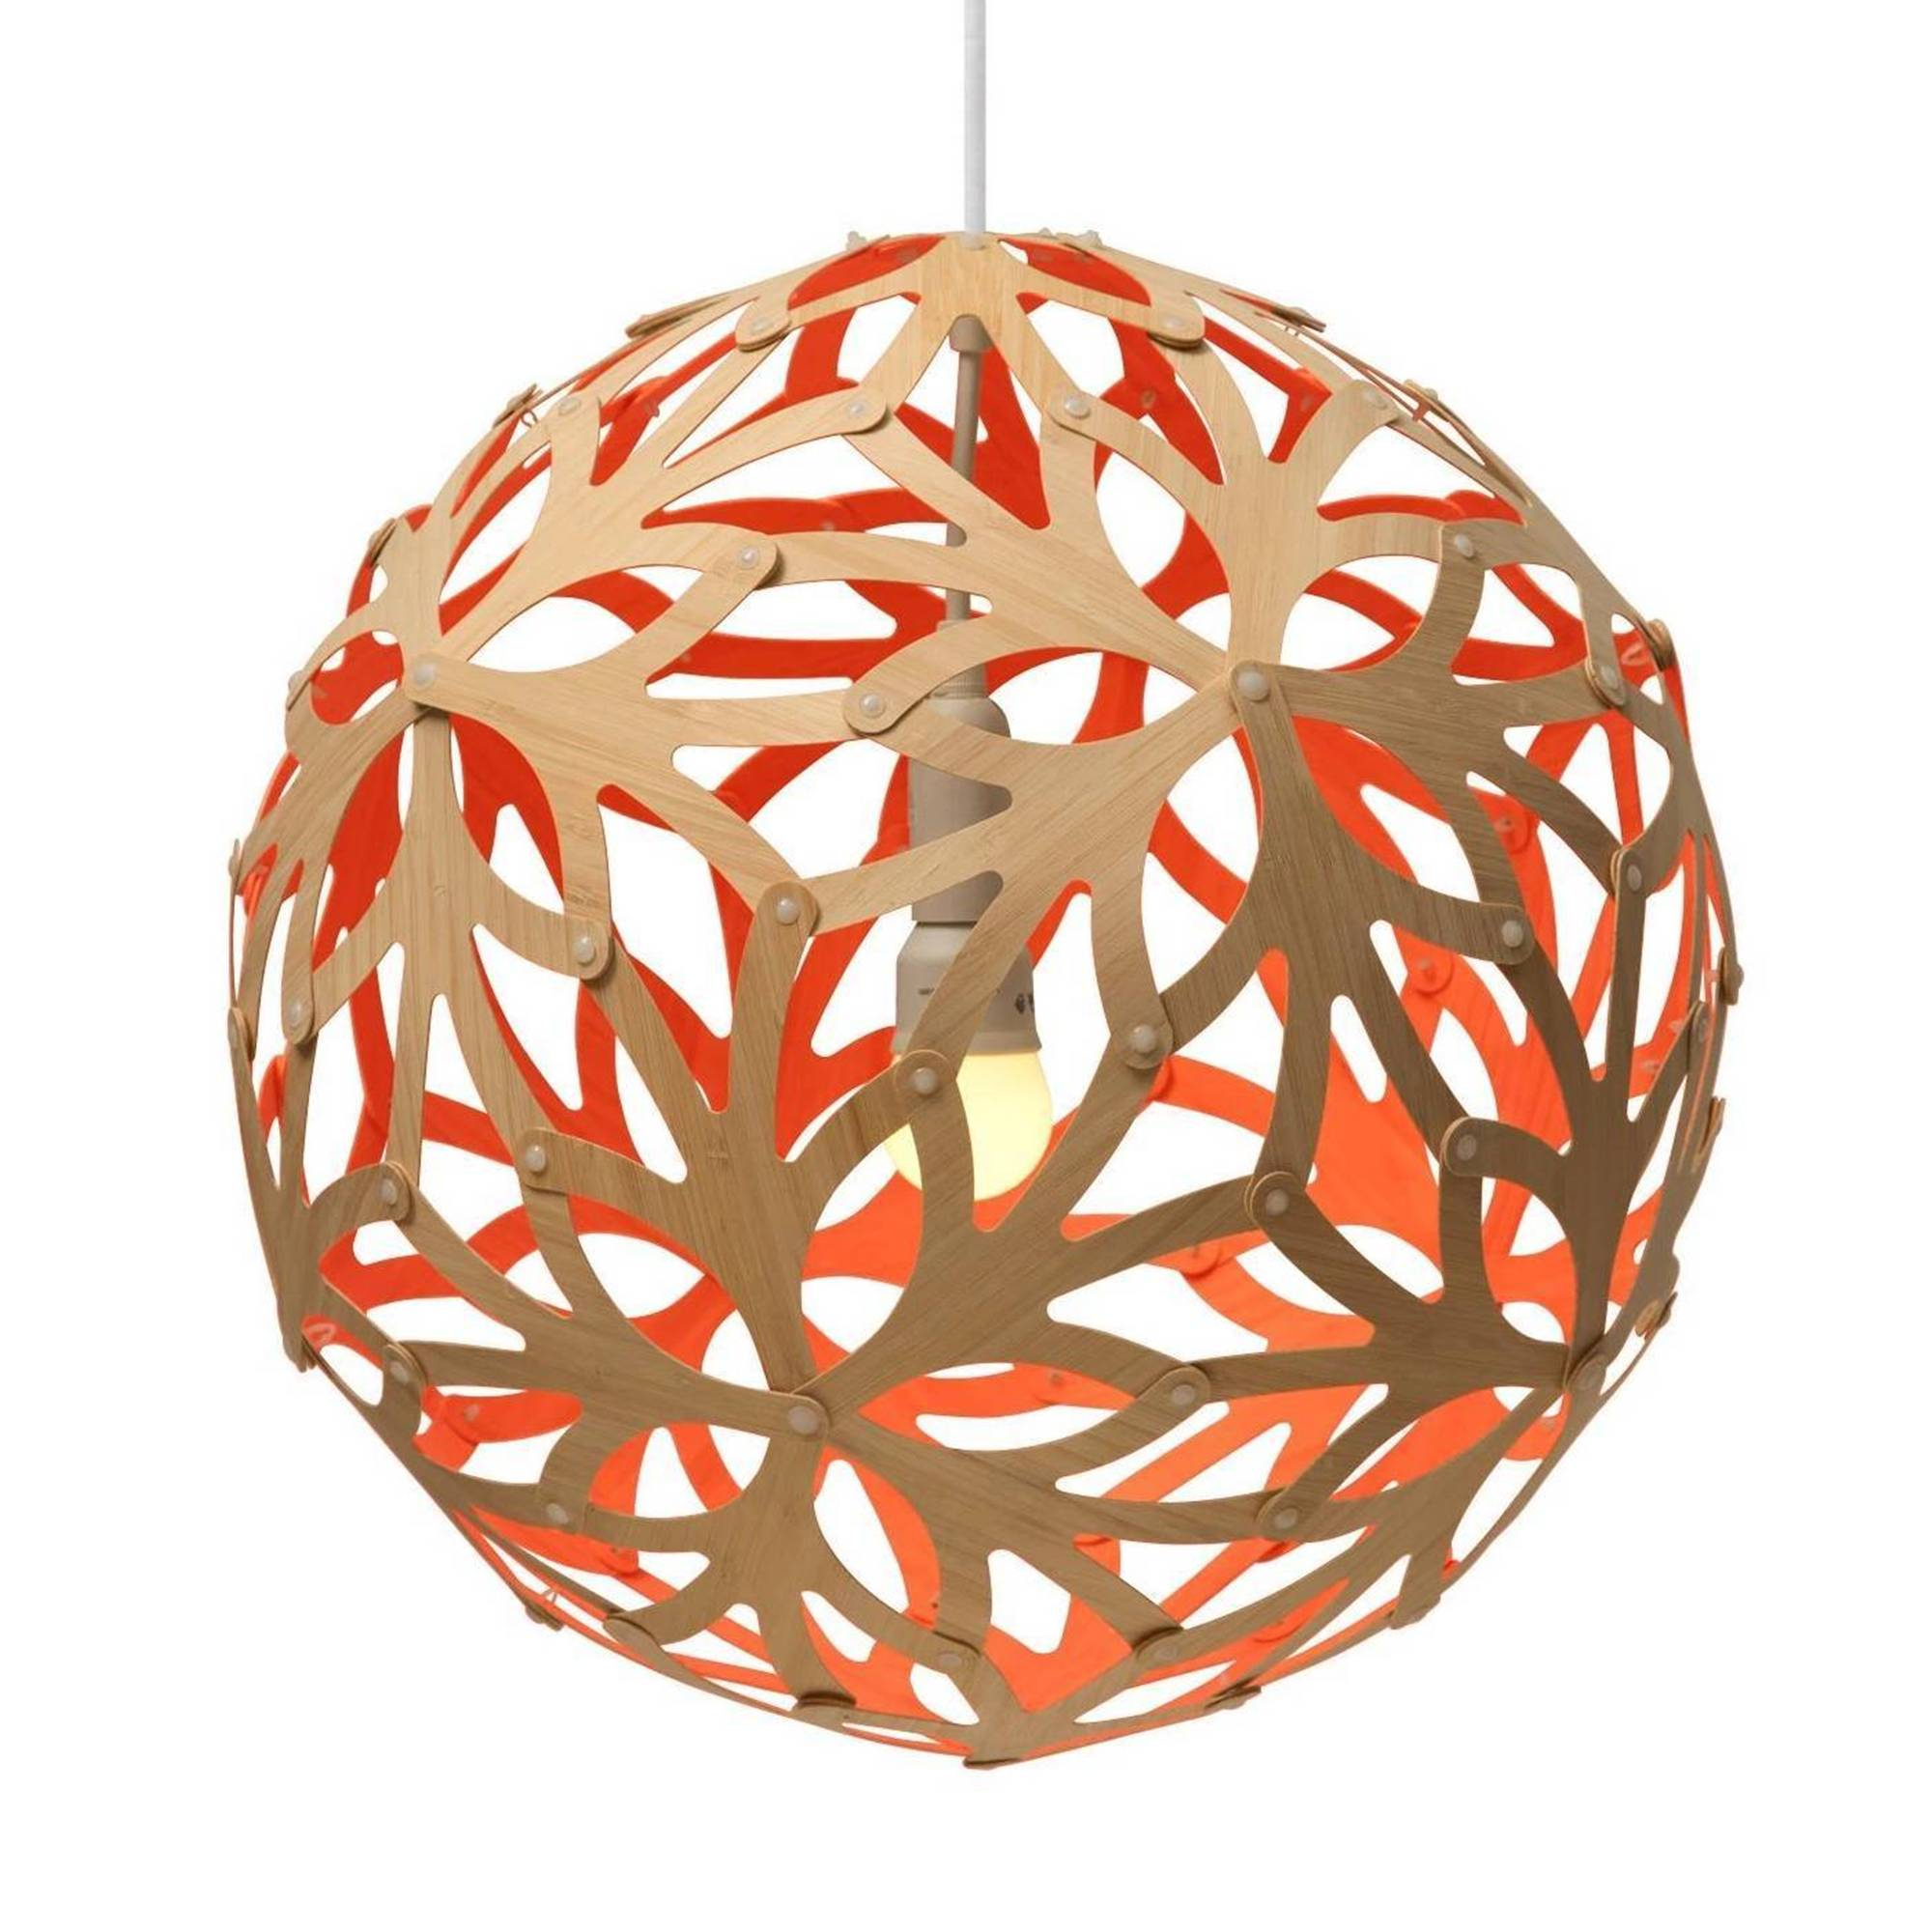 Floral Pendant Light: 1200 + Red